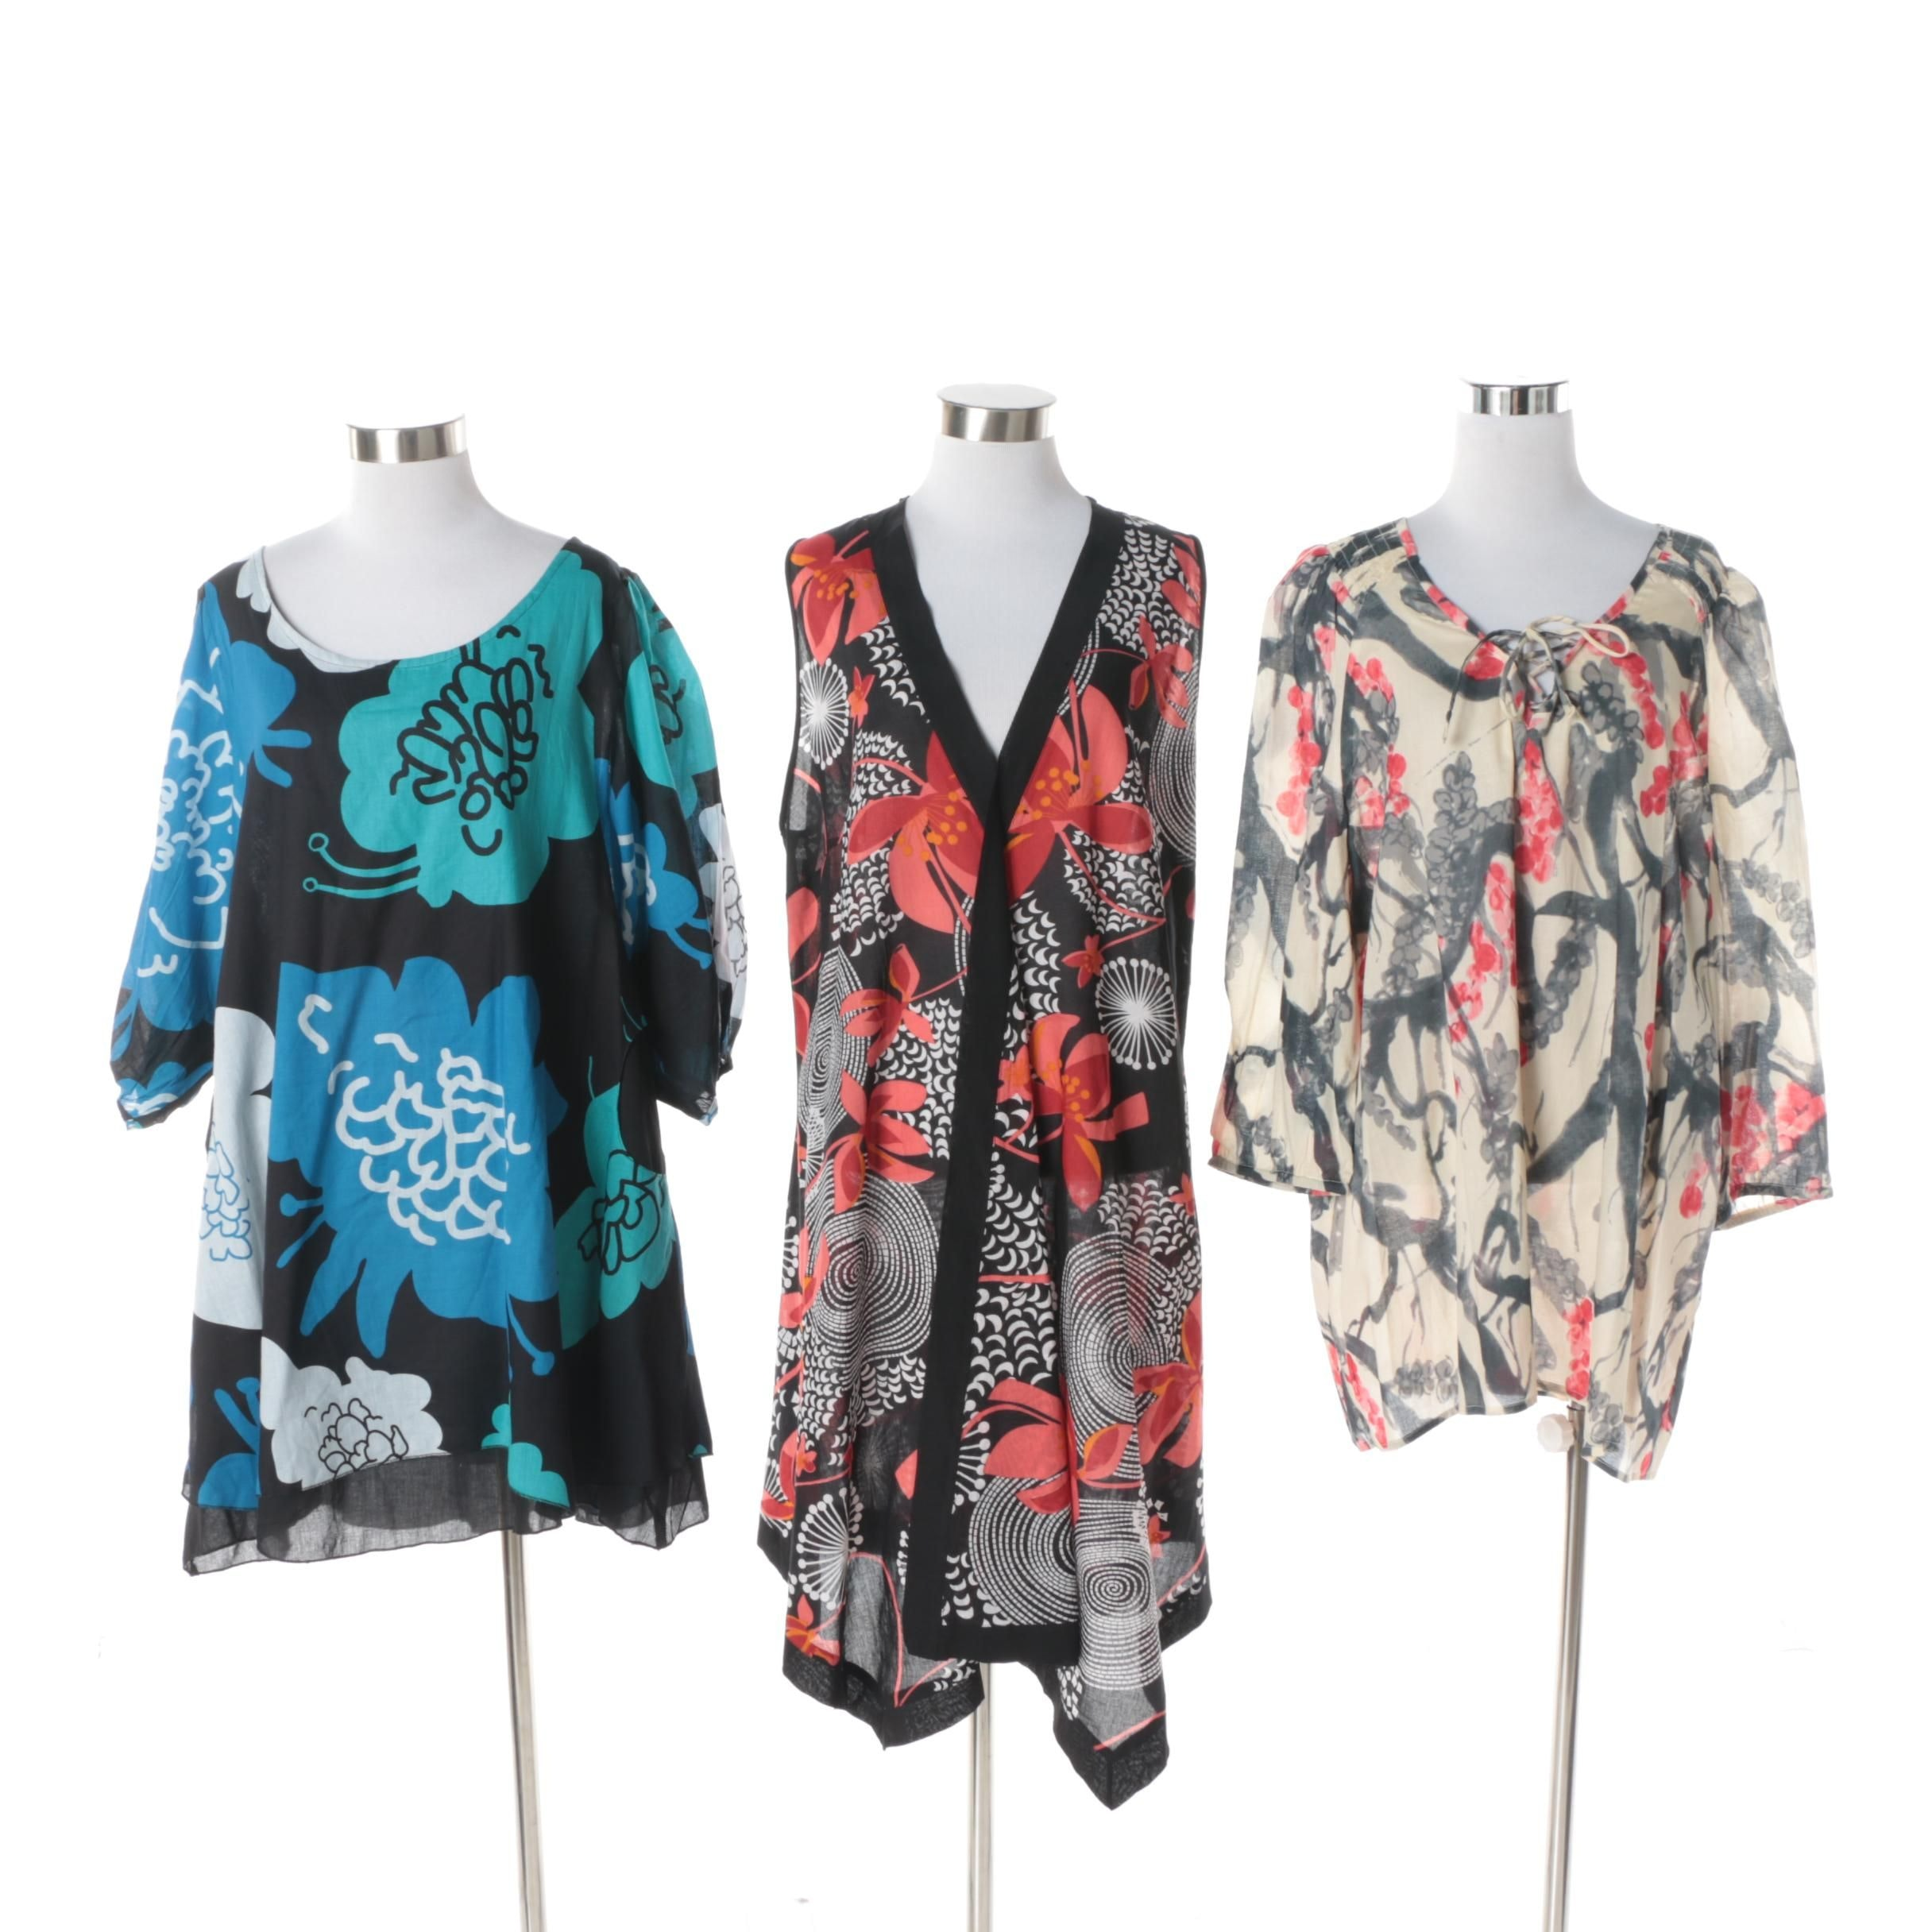 Aller Simplement Botanical Patterned Tunics and Dresses